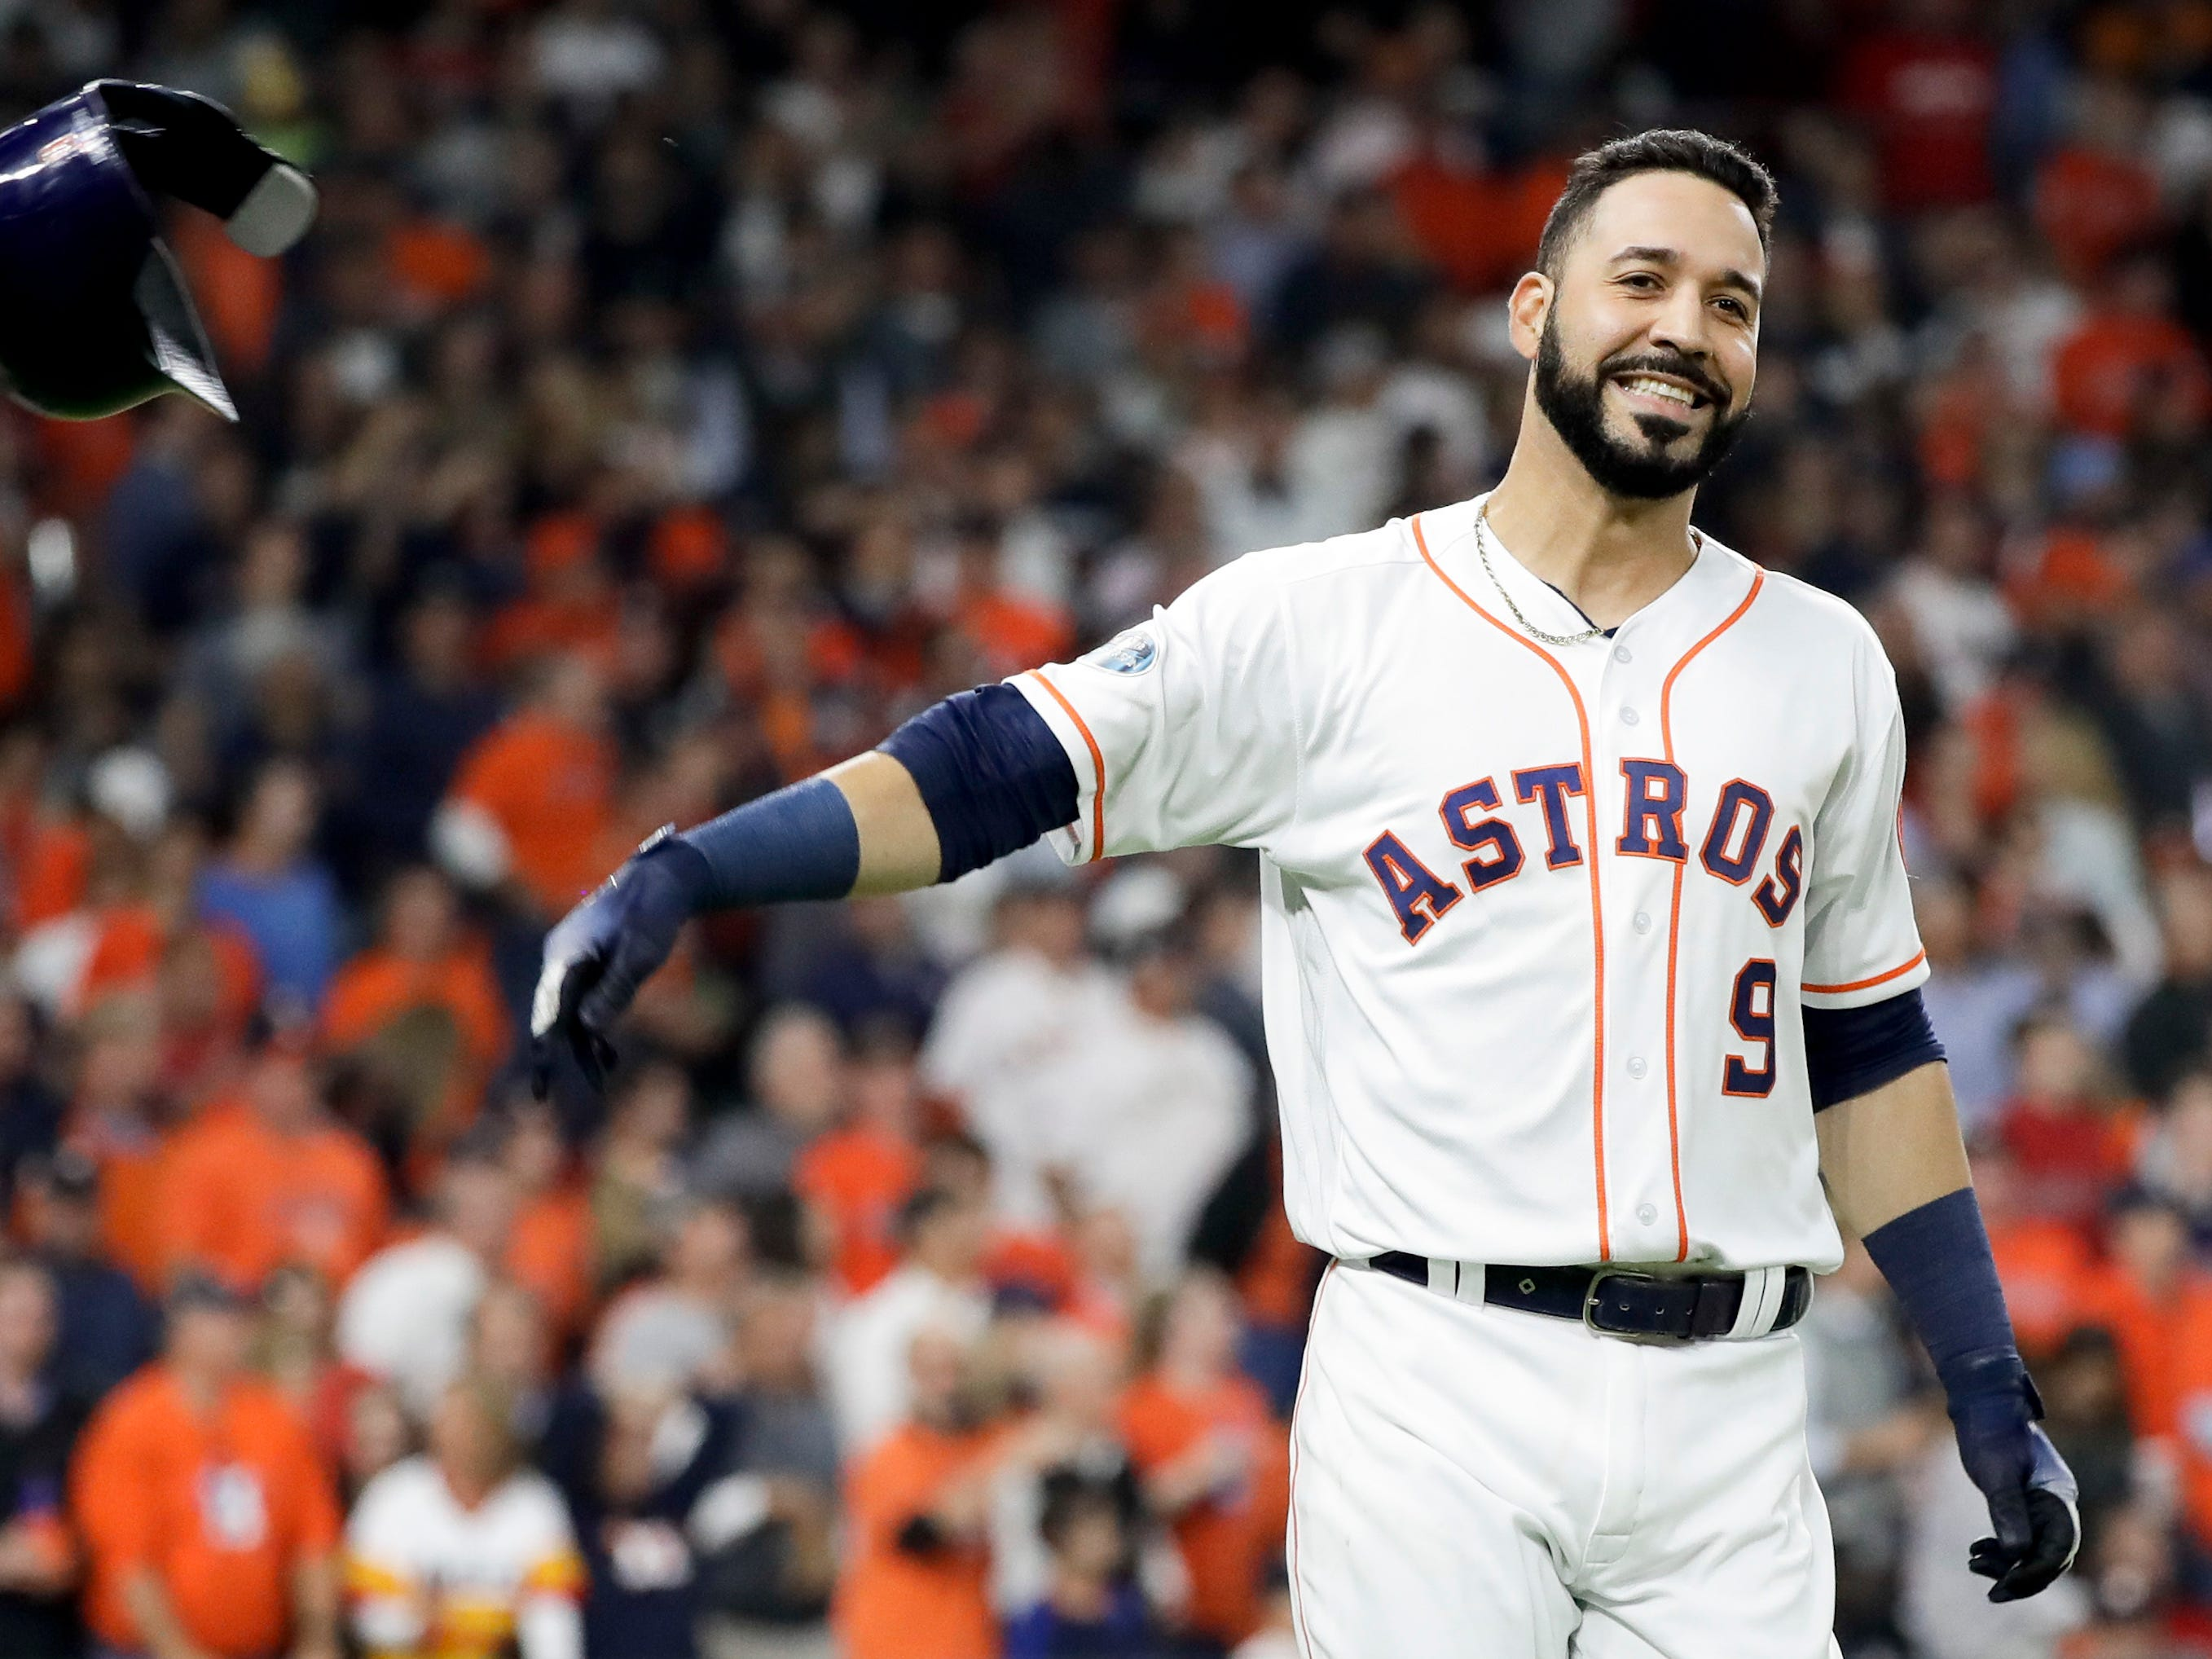 20. Marwin Gonzalez, UT, 30: The Swiss Army knife of this year's free-agent class, he can play all over the diamond, particularly the outfield and shortstop, and can hit to boot. Prediction: Indians, four years, $35 million